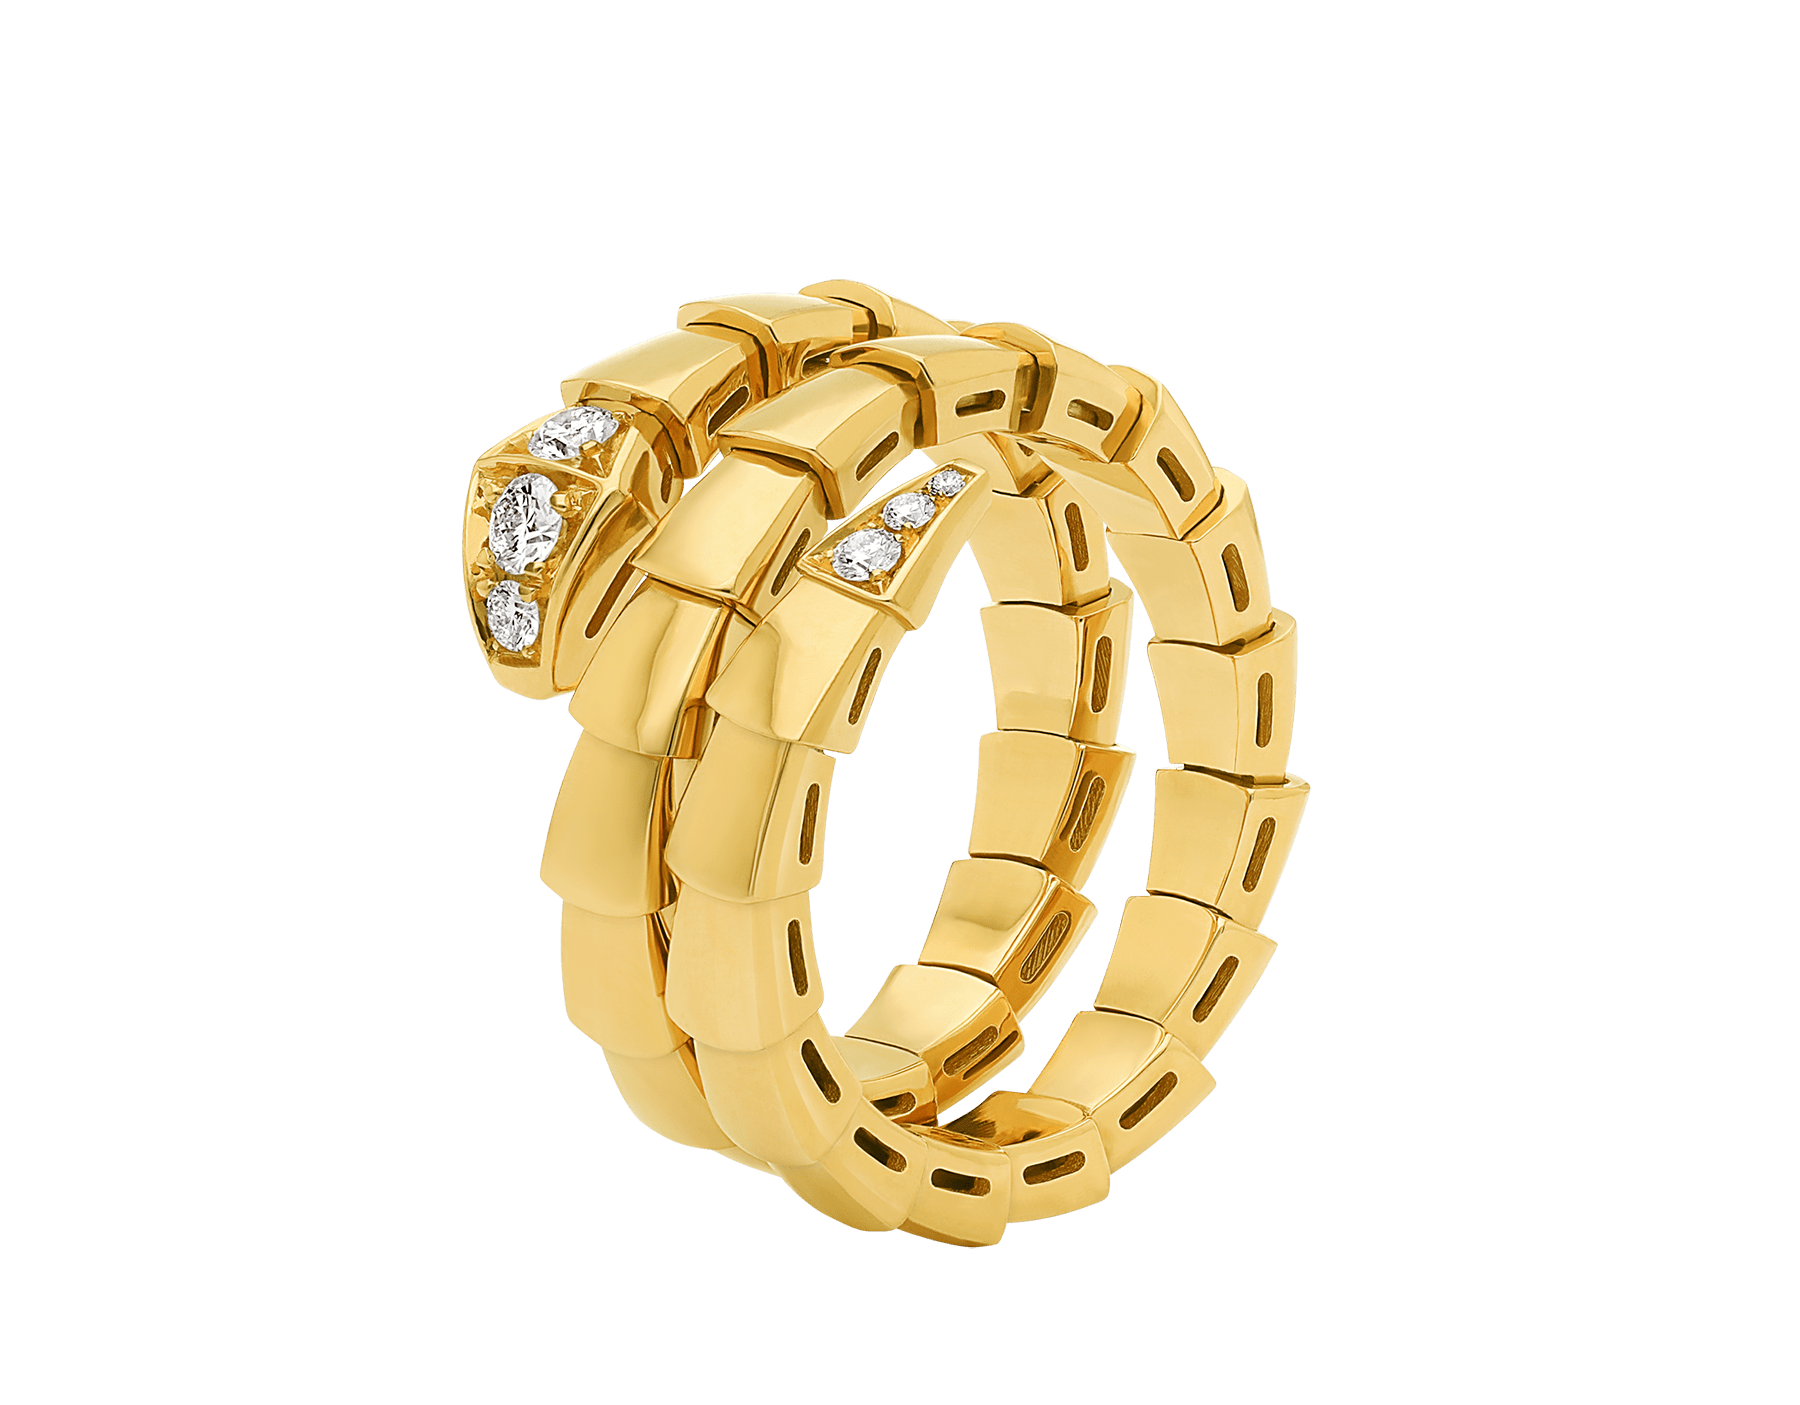 Serpenti Viper 18 kt yellow gold two-coil ring set with demi-pavé diamonds AN858970 image 1